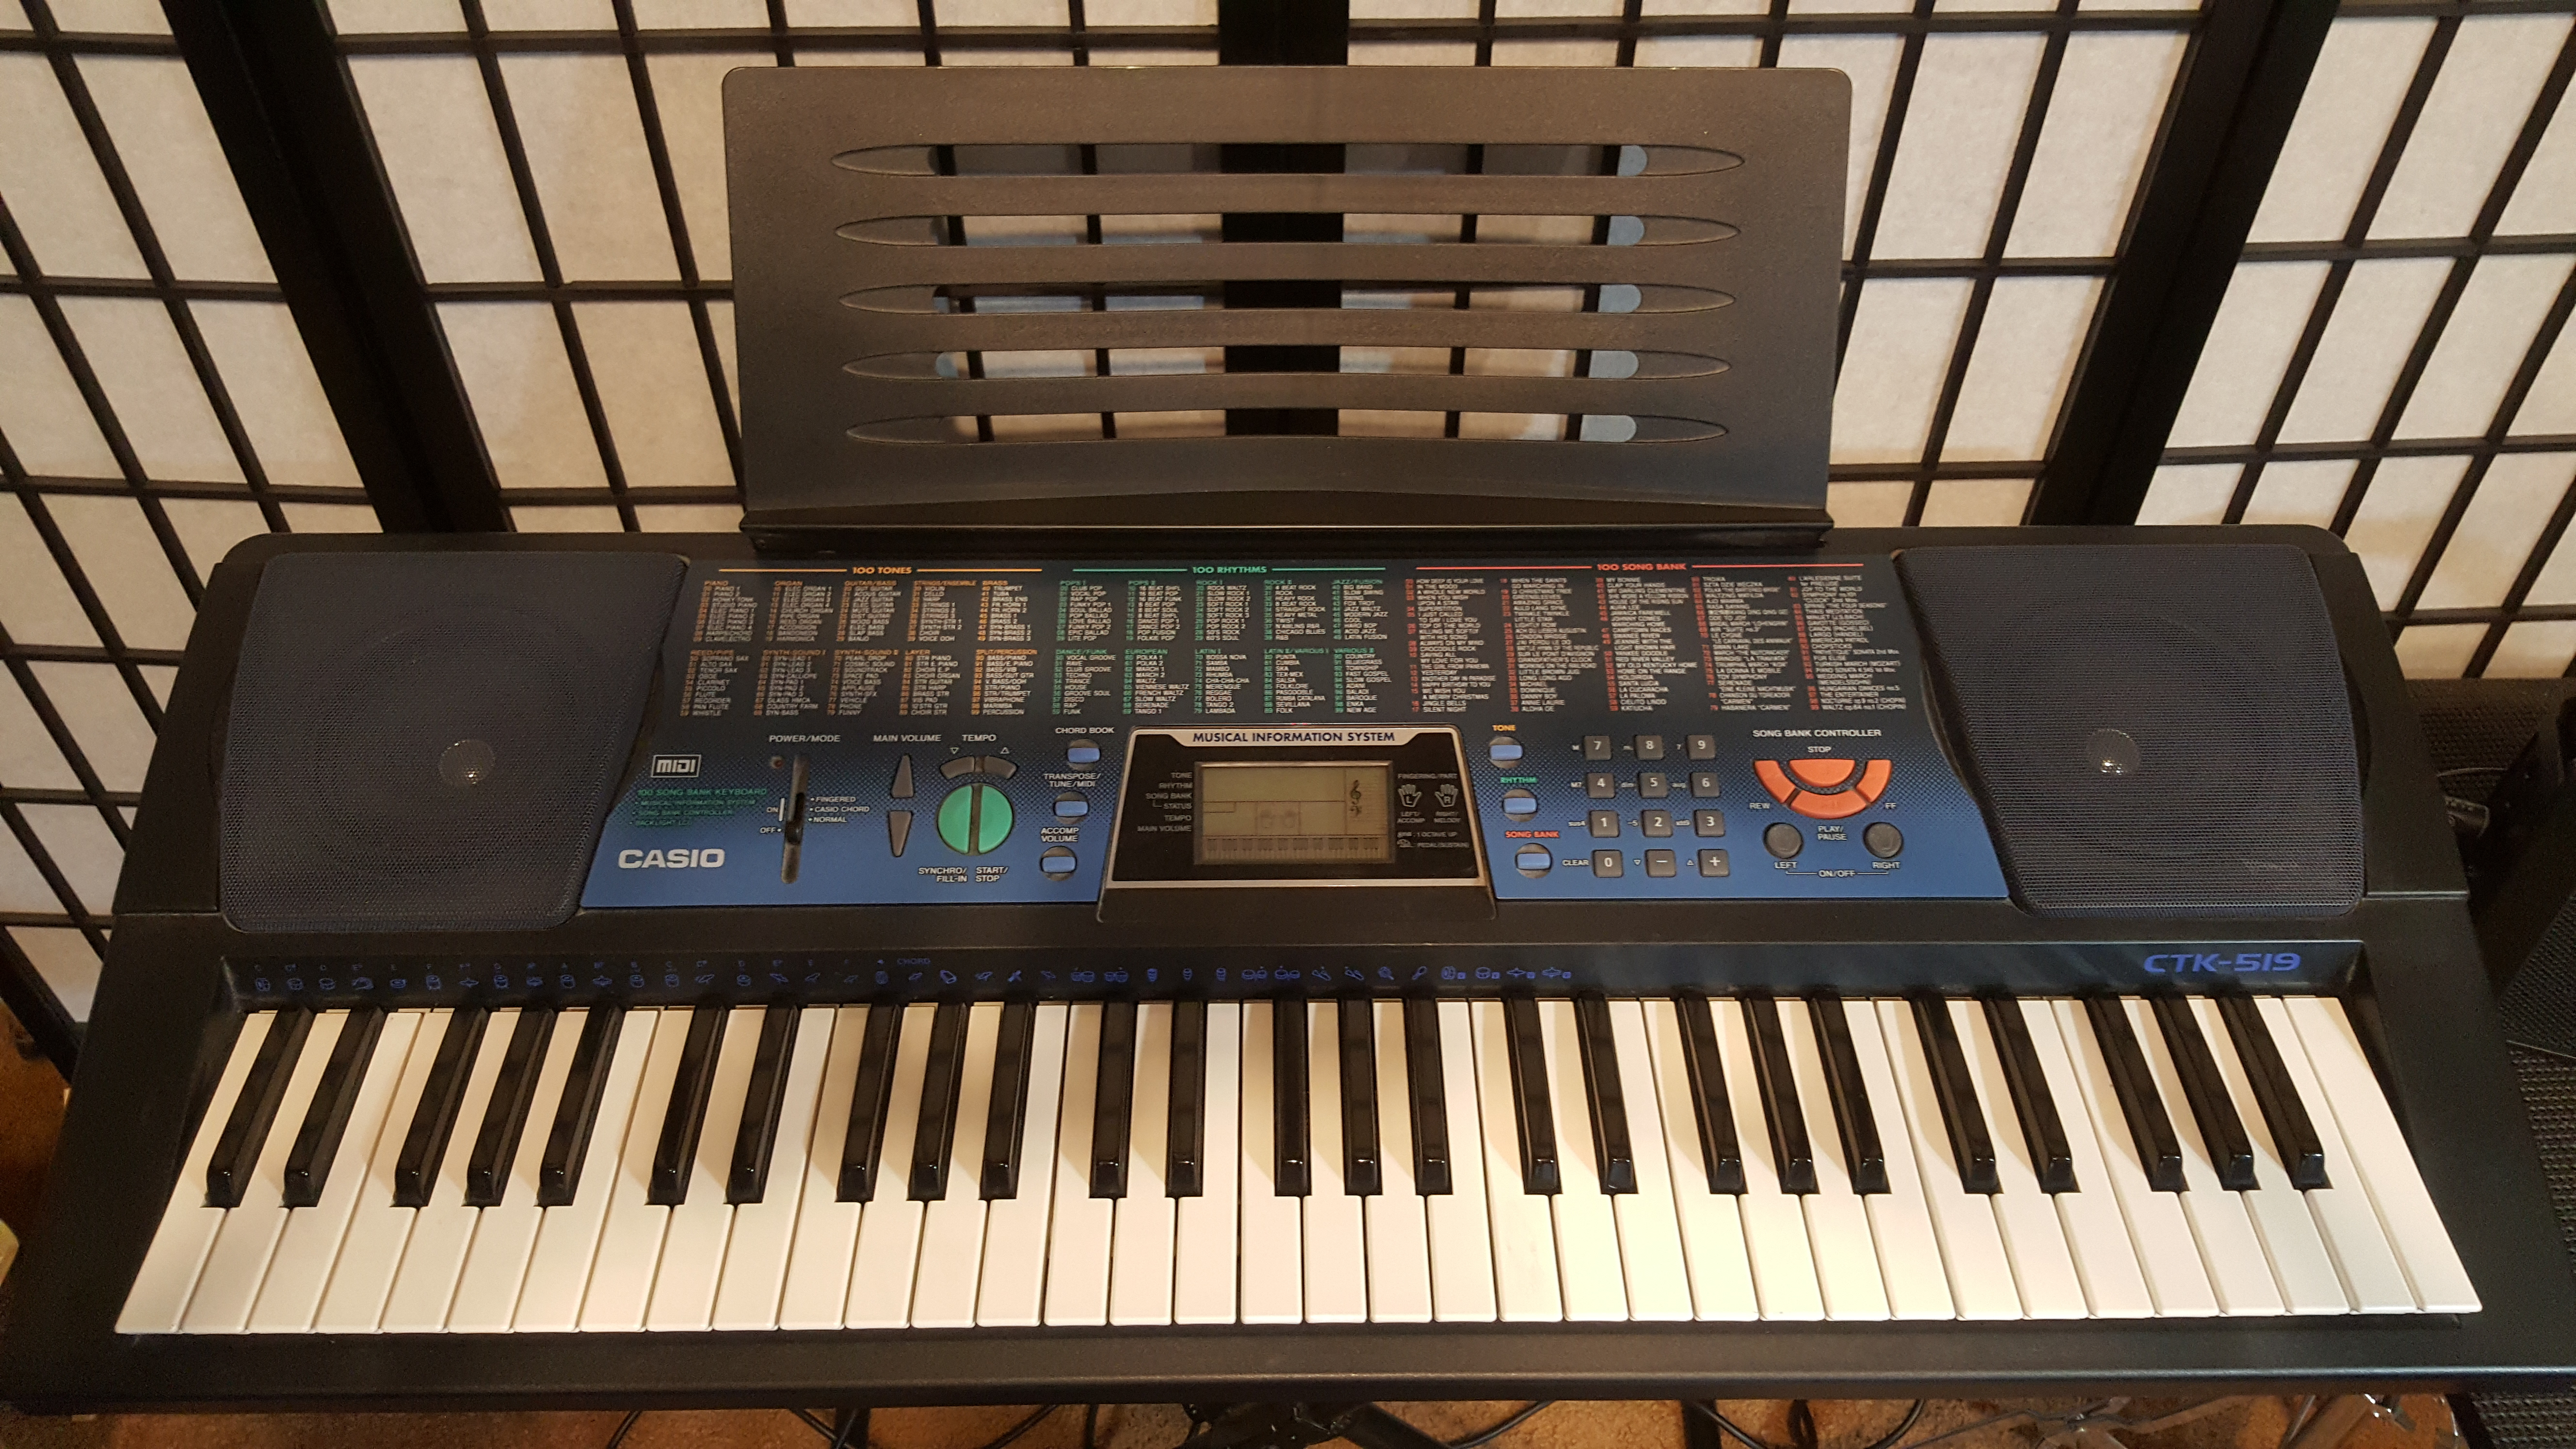 For Sale Casio Ctk 519 Electronic Keyboard News